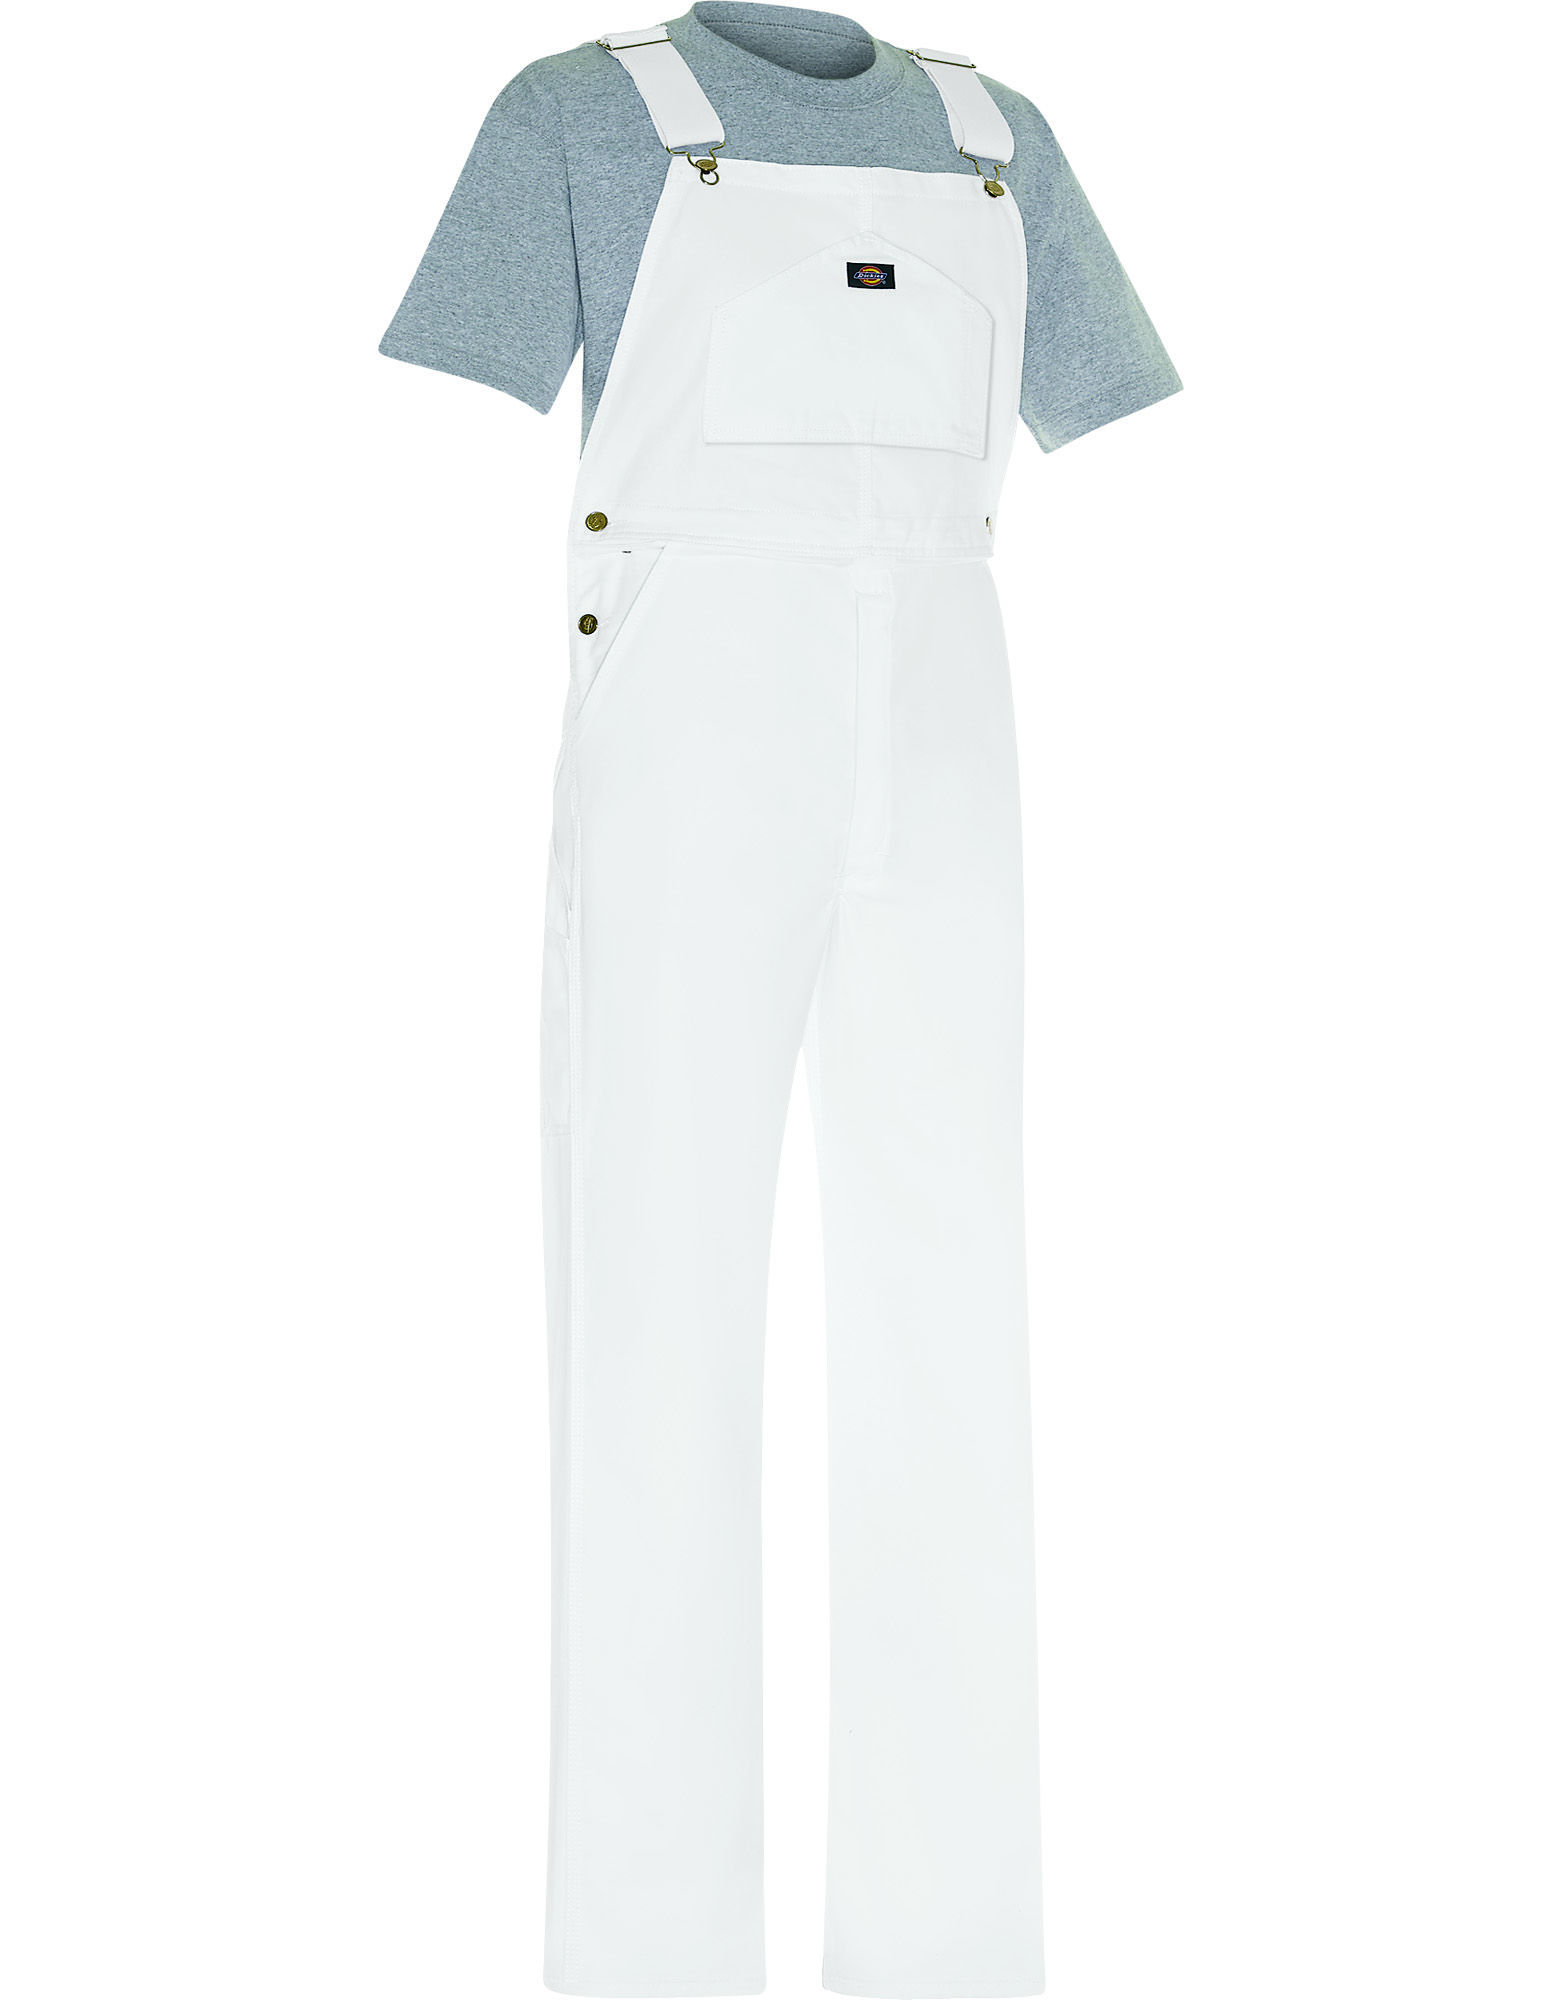 Painter's Bib Overall-Dickies Industrial